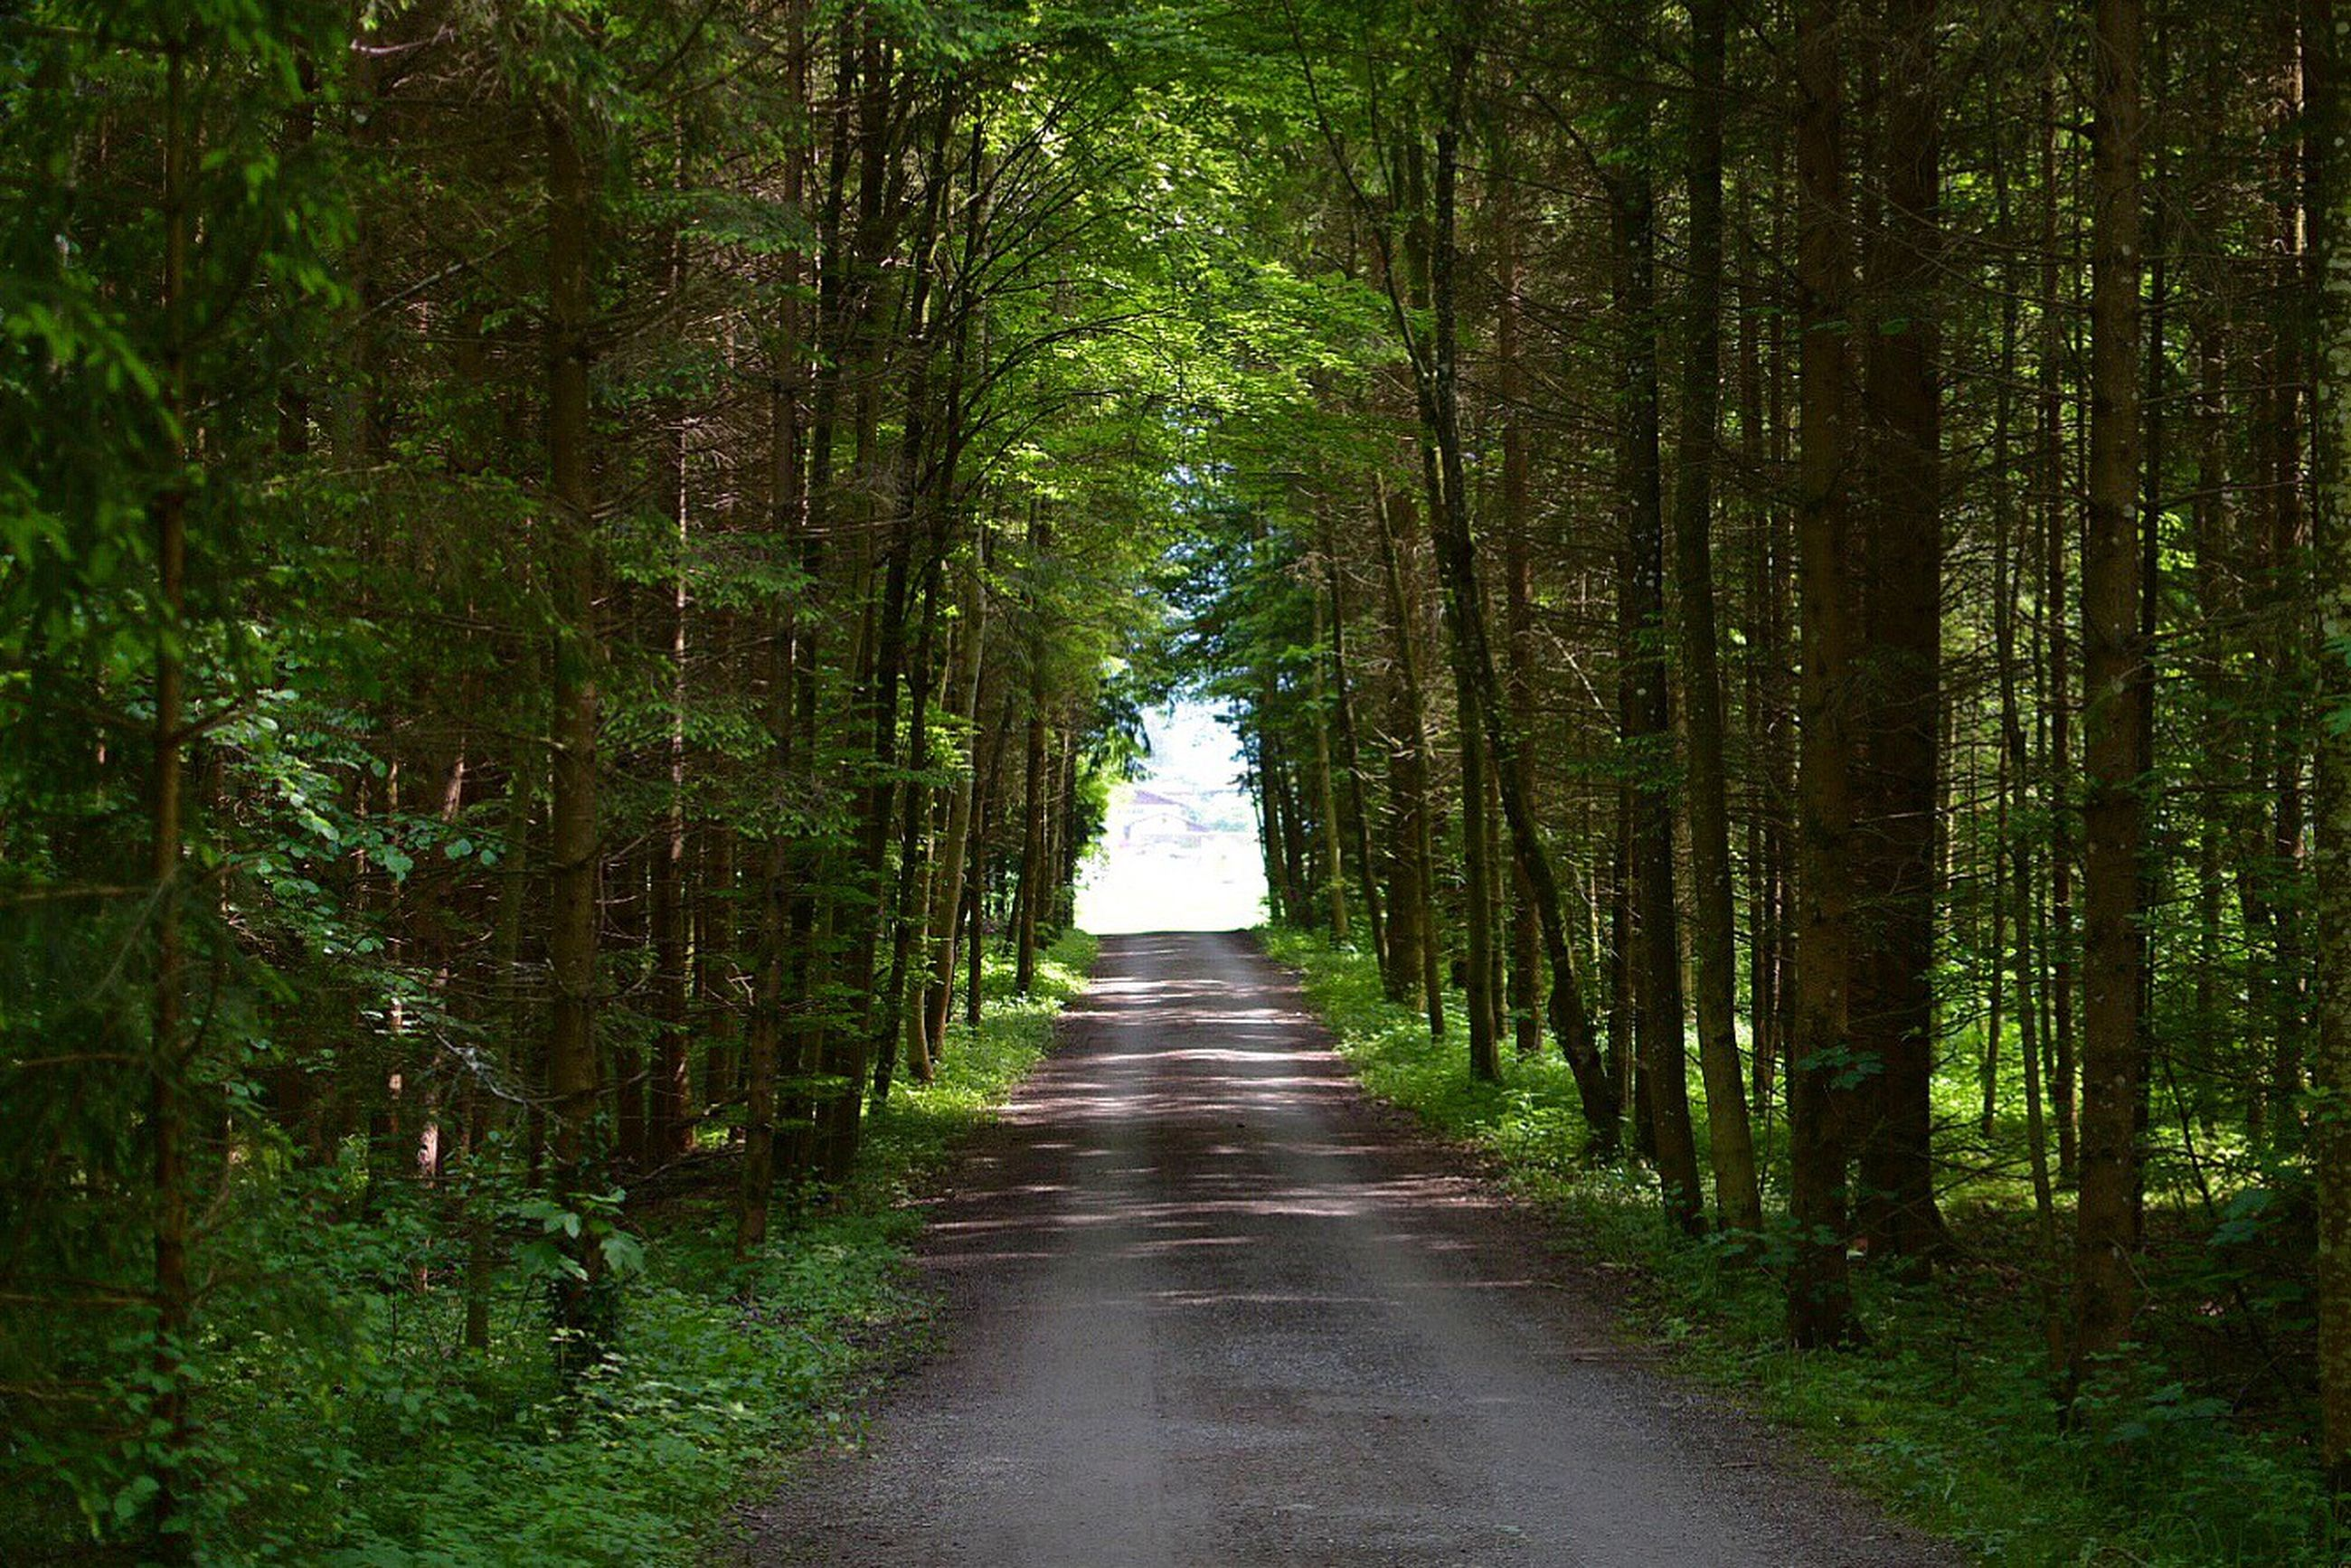 the way forward, tree, diminishing perspective, vanishing point, tranquility, forest, tranquil scene, nature, growth, narrow, dirt road, footpath, pathway, green color, treelined, tree trunk, road, beauty in nature, long, walkway